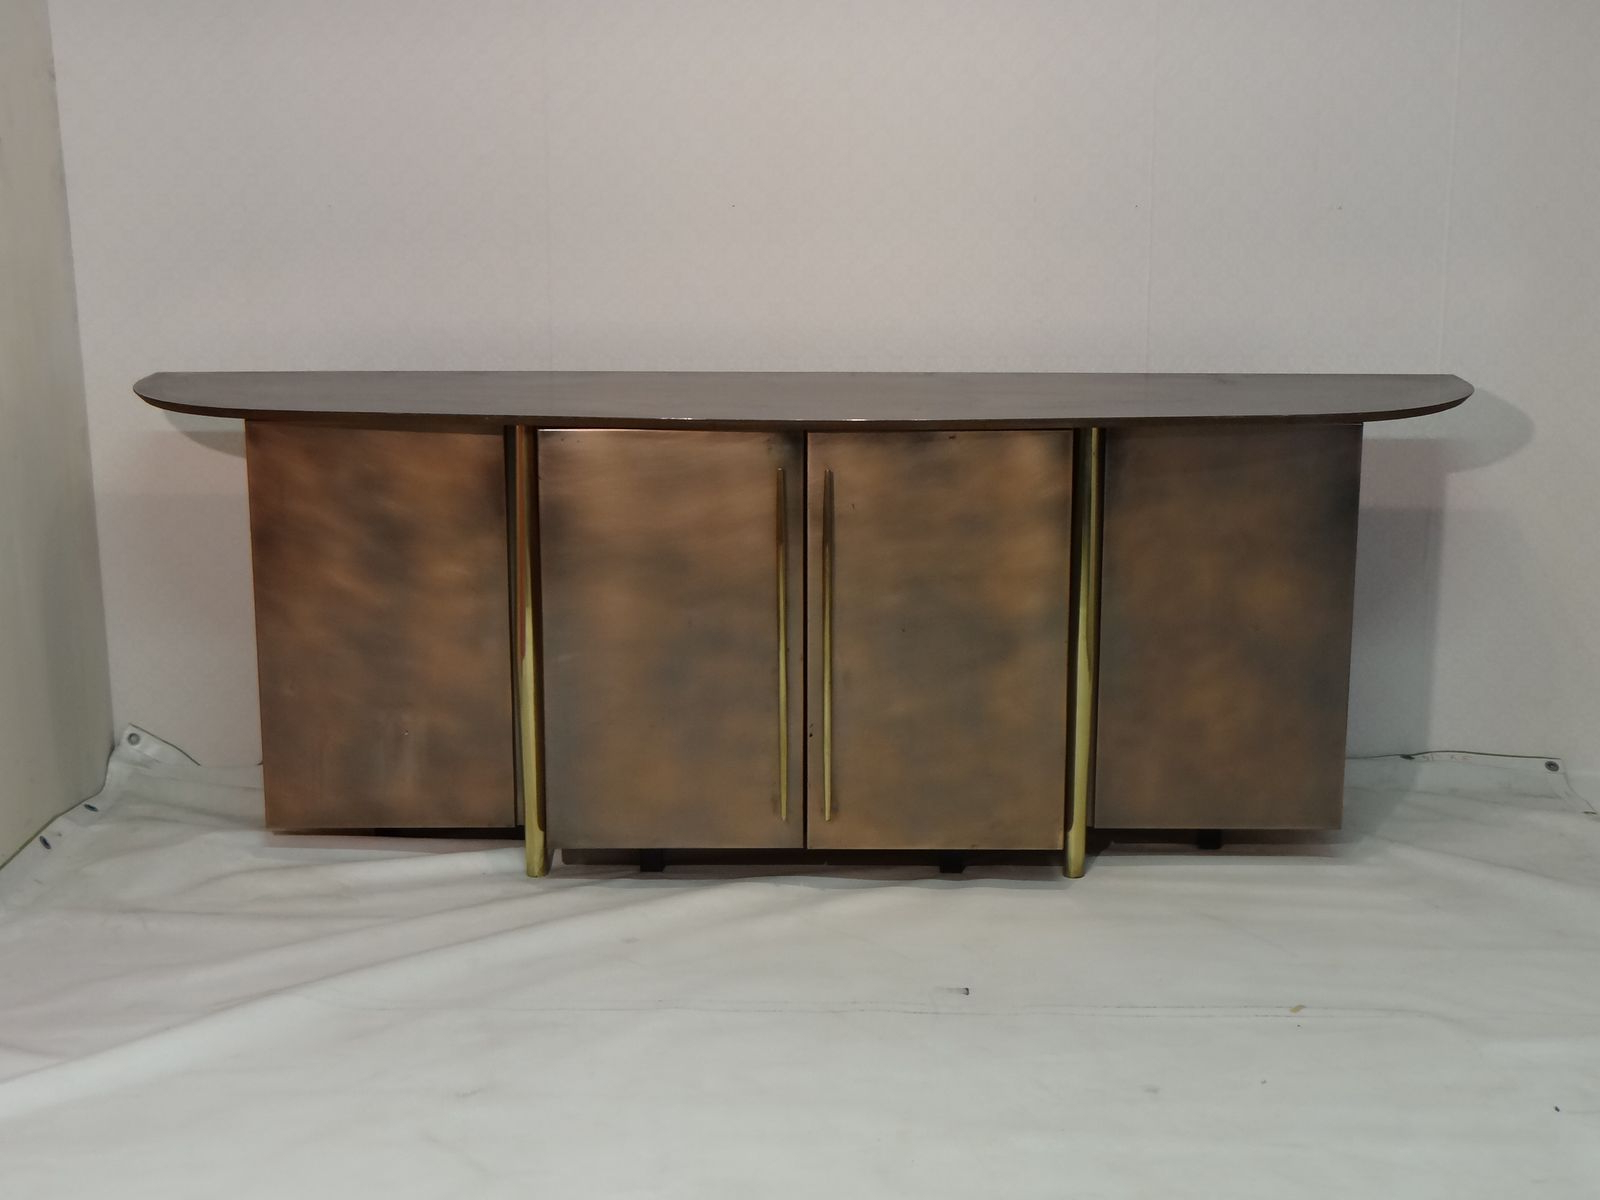 Newest Aged Brass Sideboards Regarding Vintage Brass Sideboard From Belgo Chrom For Sale At Pamono (View 2 of 20)